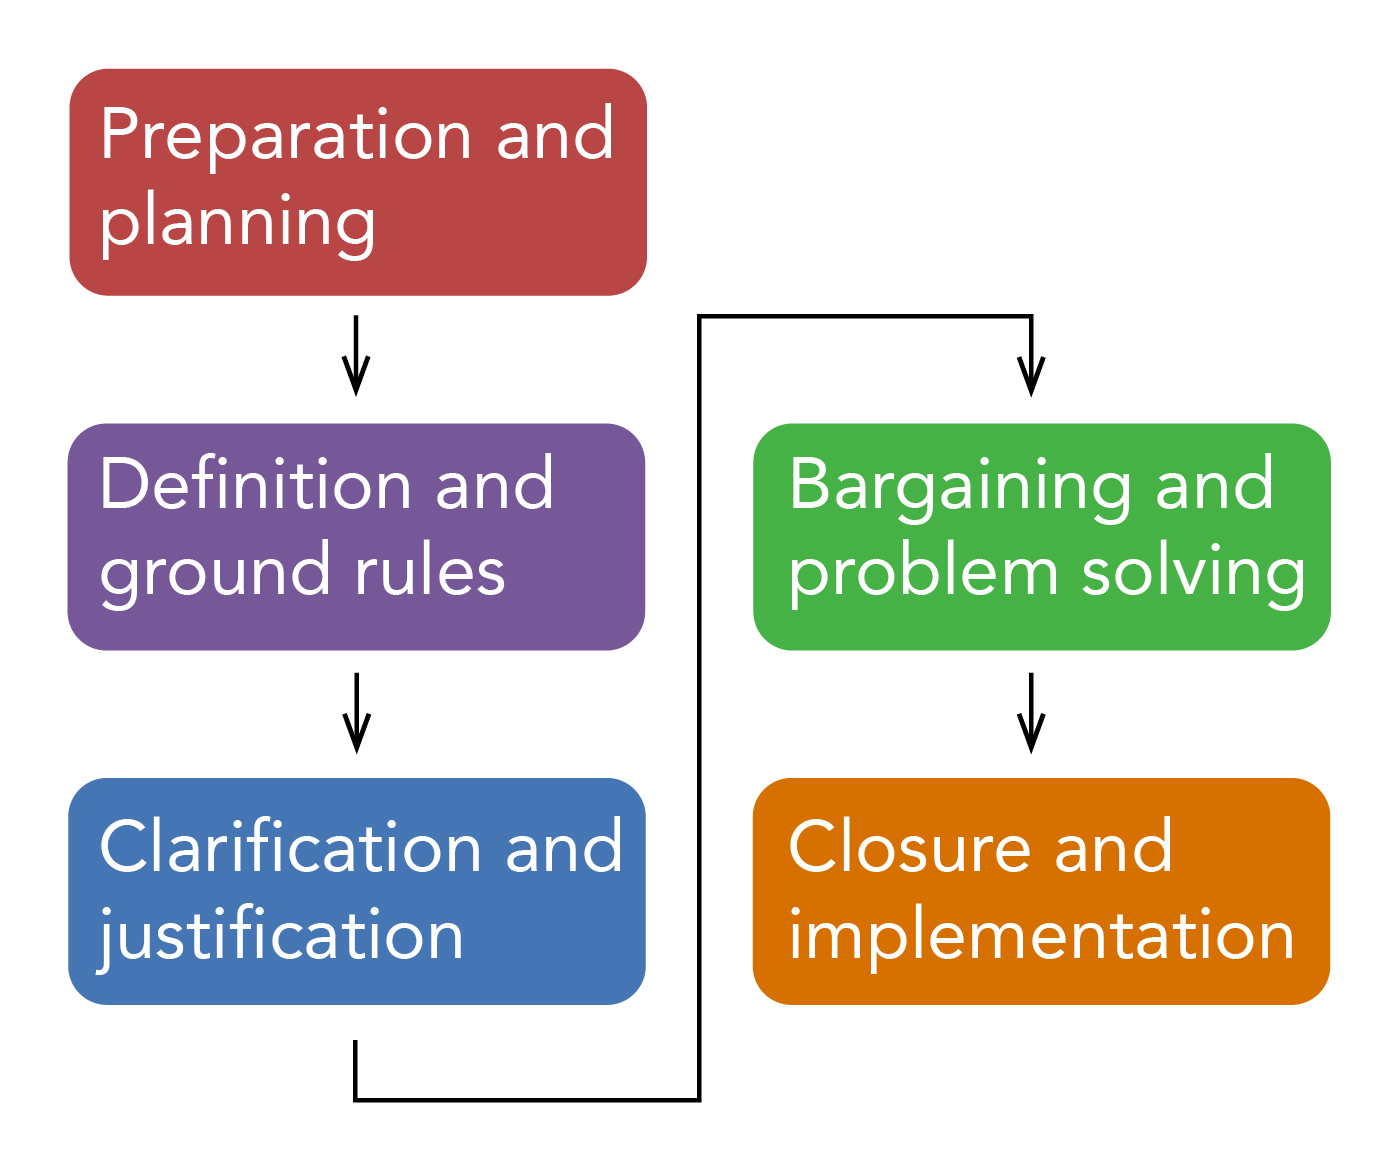 First: Preparation and planning. Second: Definition and ground rules. Third: Clarification and justification. Fourth: Bargaining and problem solving. Fifth: Closure and implementation.